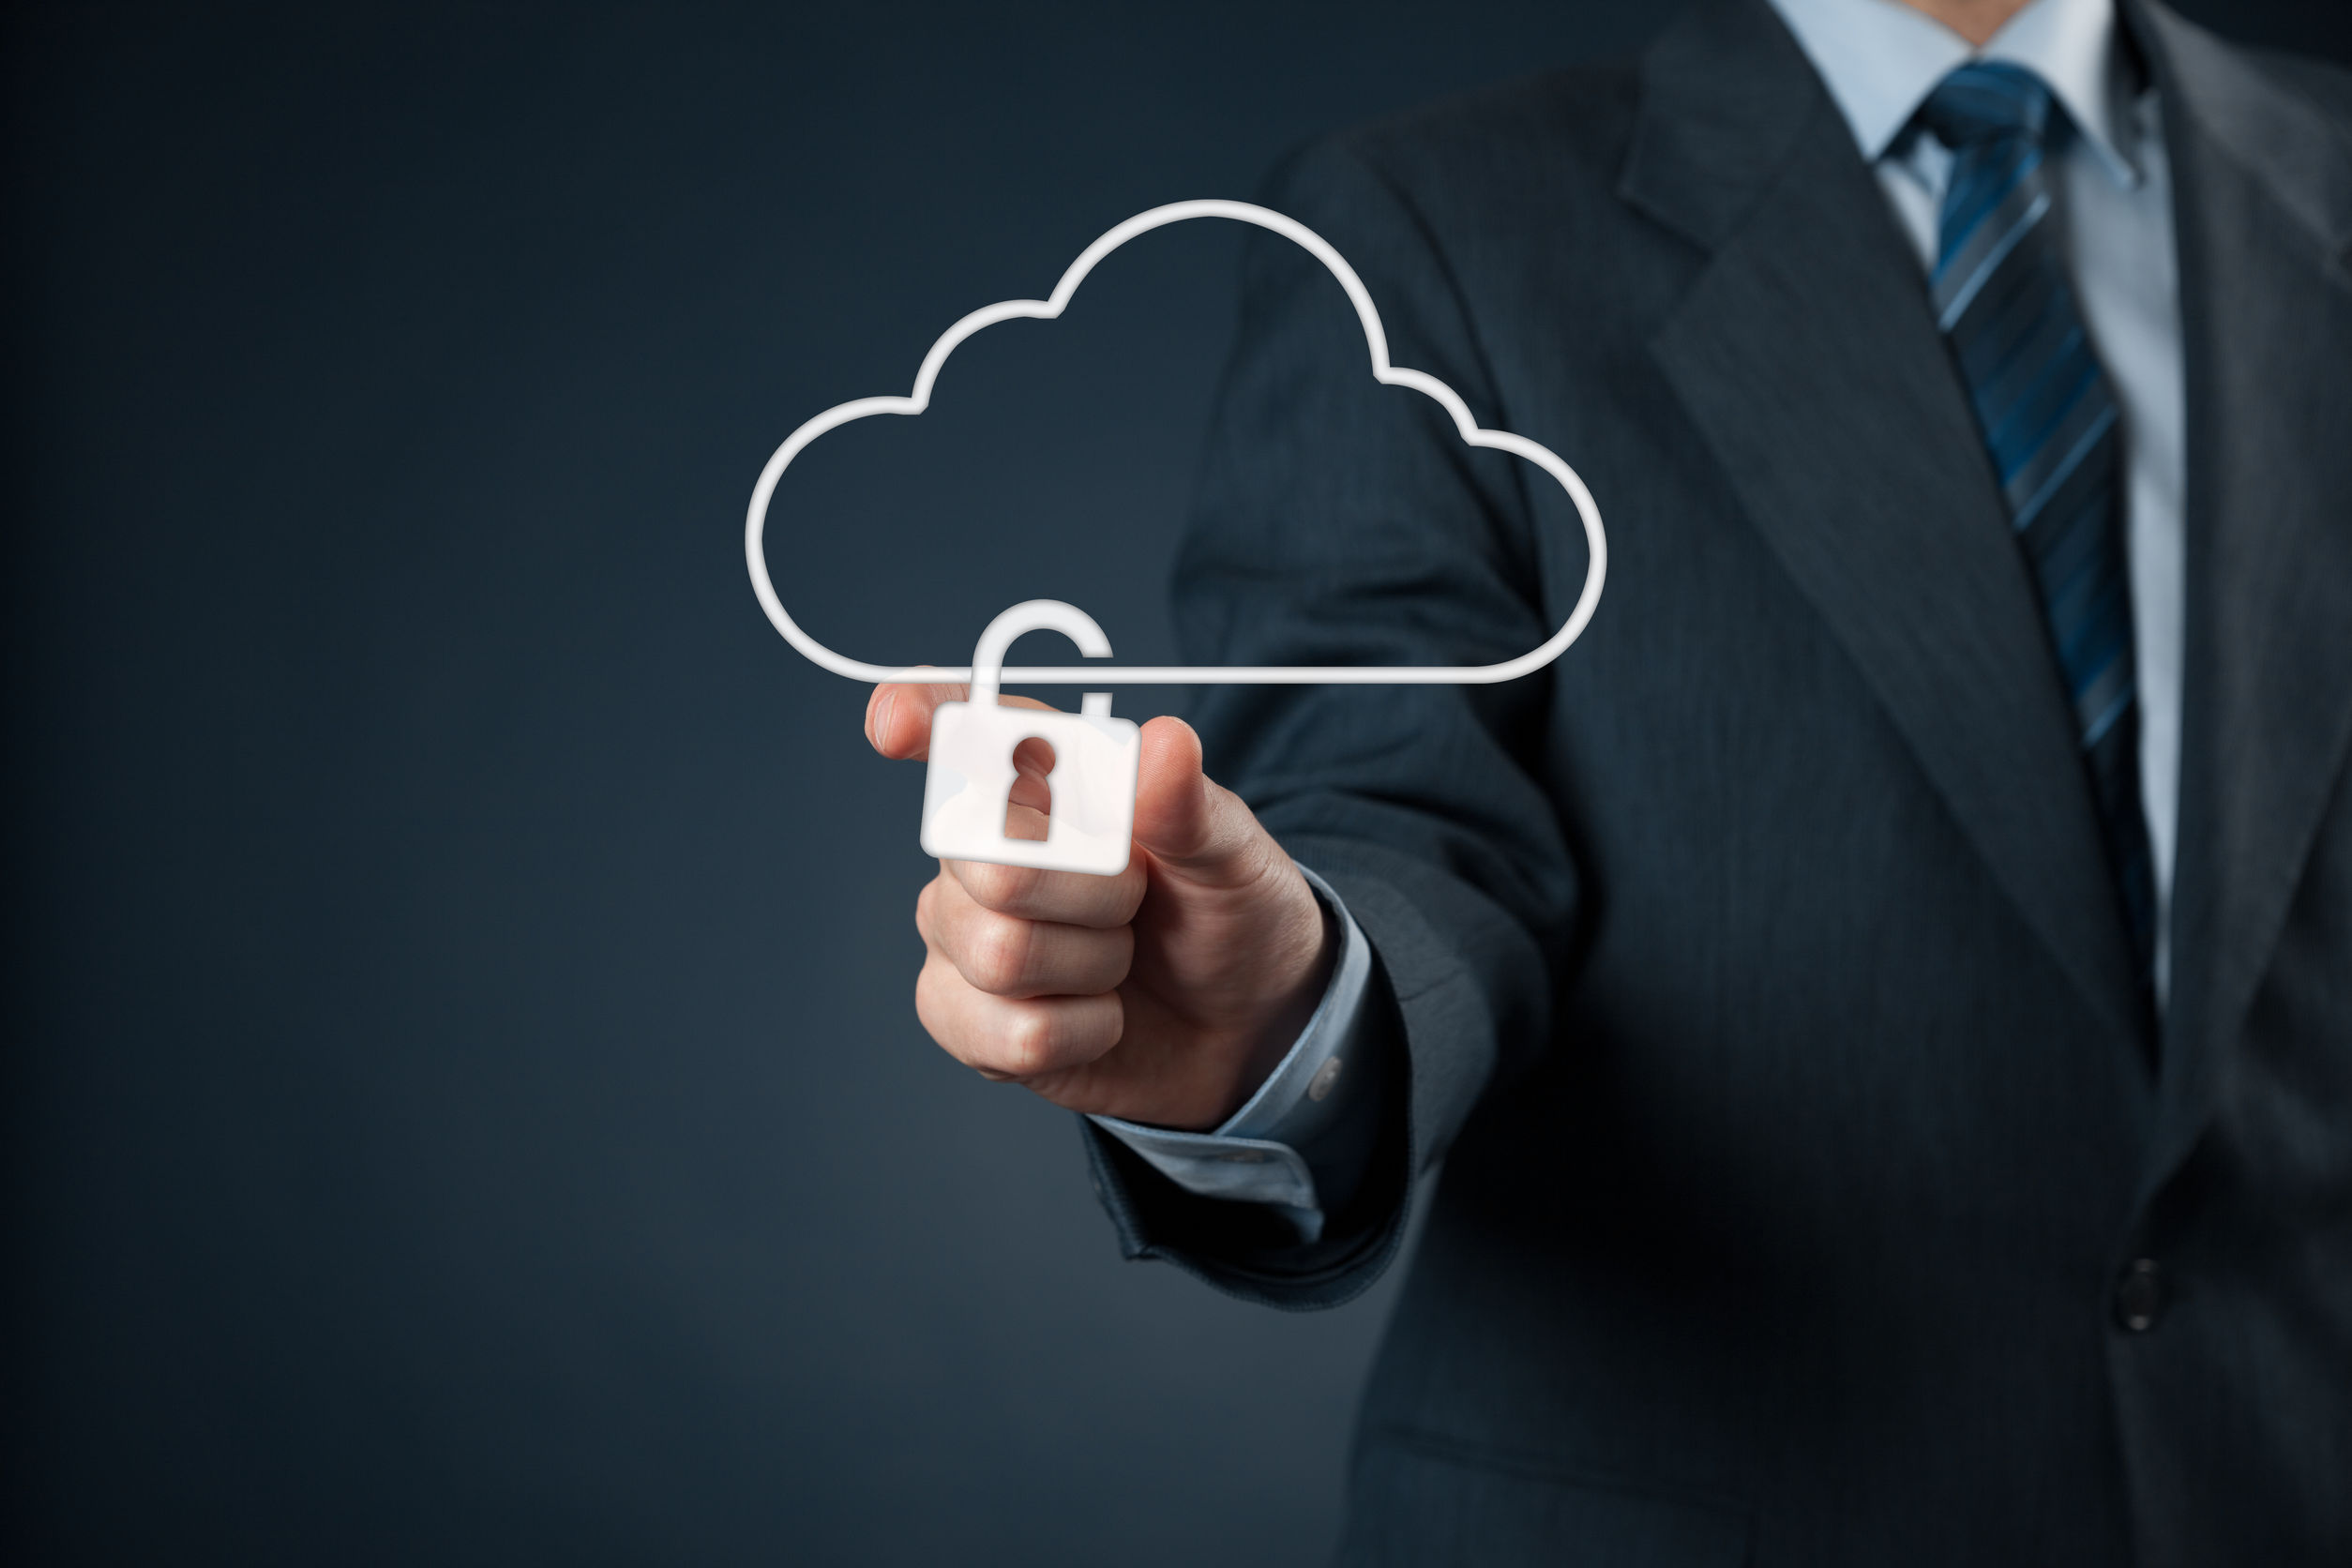 Cloud Security Monitoring and Cloud Benefits, Why So Many Businesses Use The Cloud